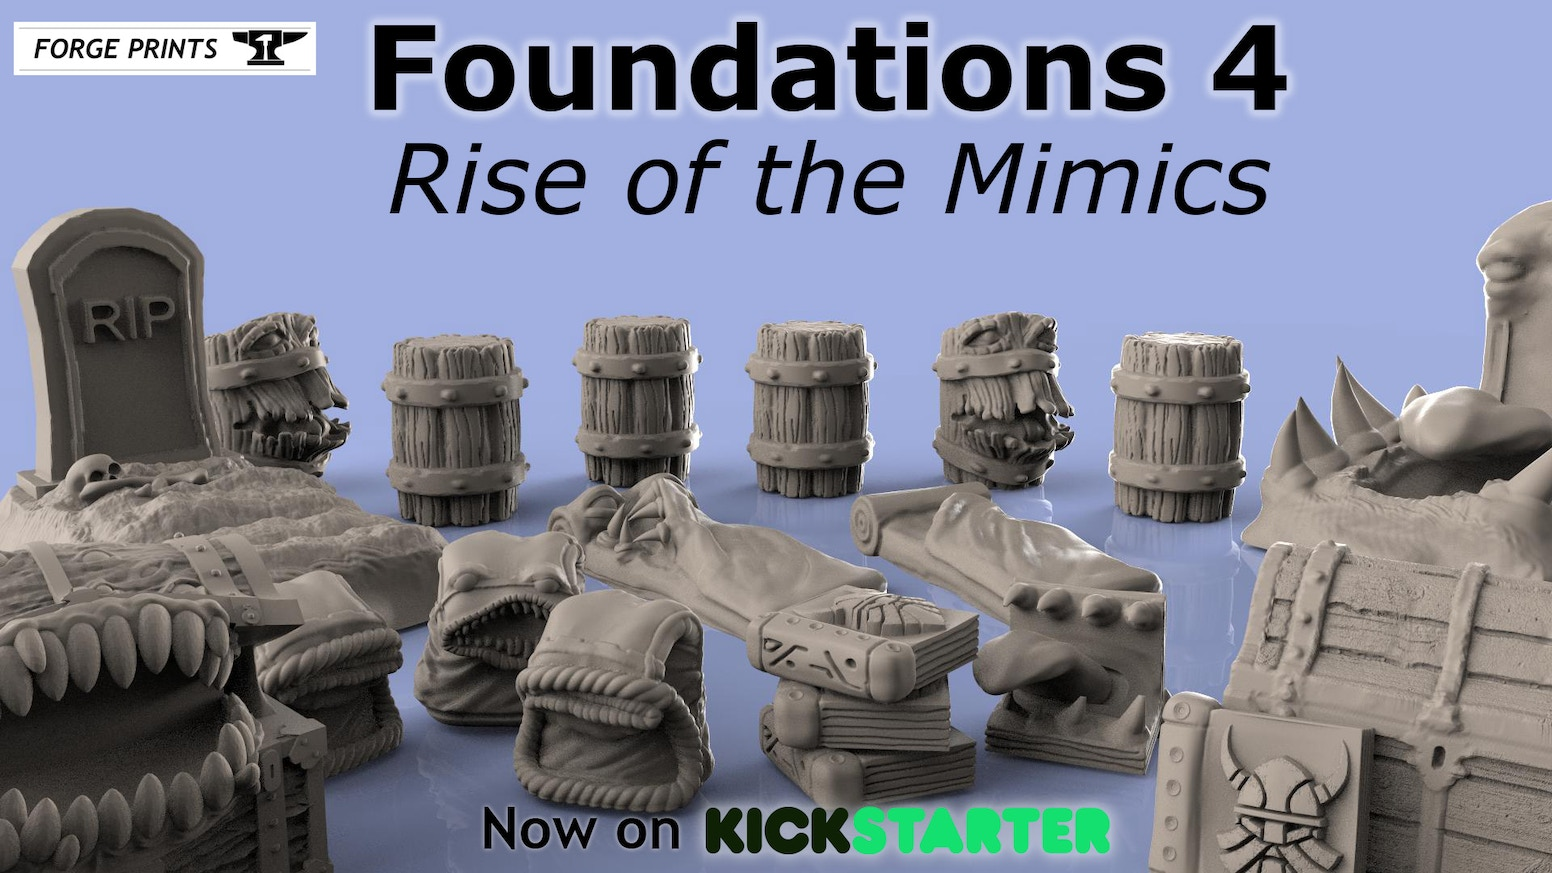 Foundations 4 Rise of the Mimics! Perfectly nasty little creatures for any tabletop gaming experience.